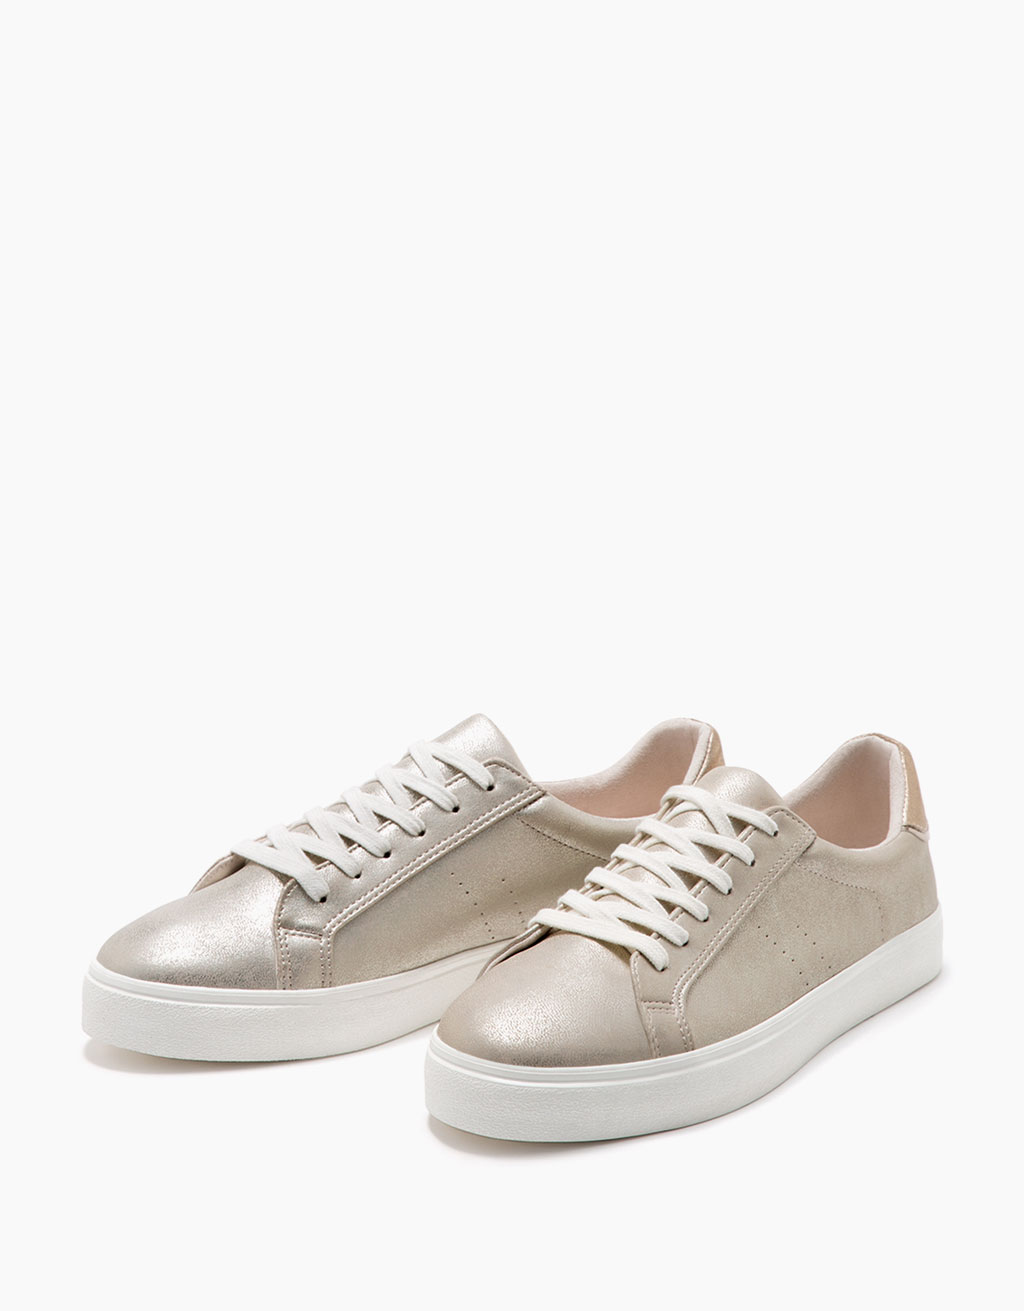 Lace-up shiny metallic sneakers